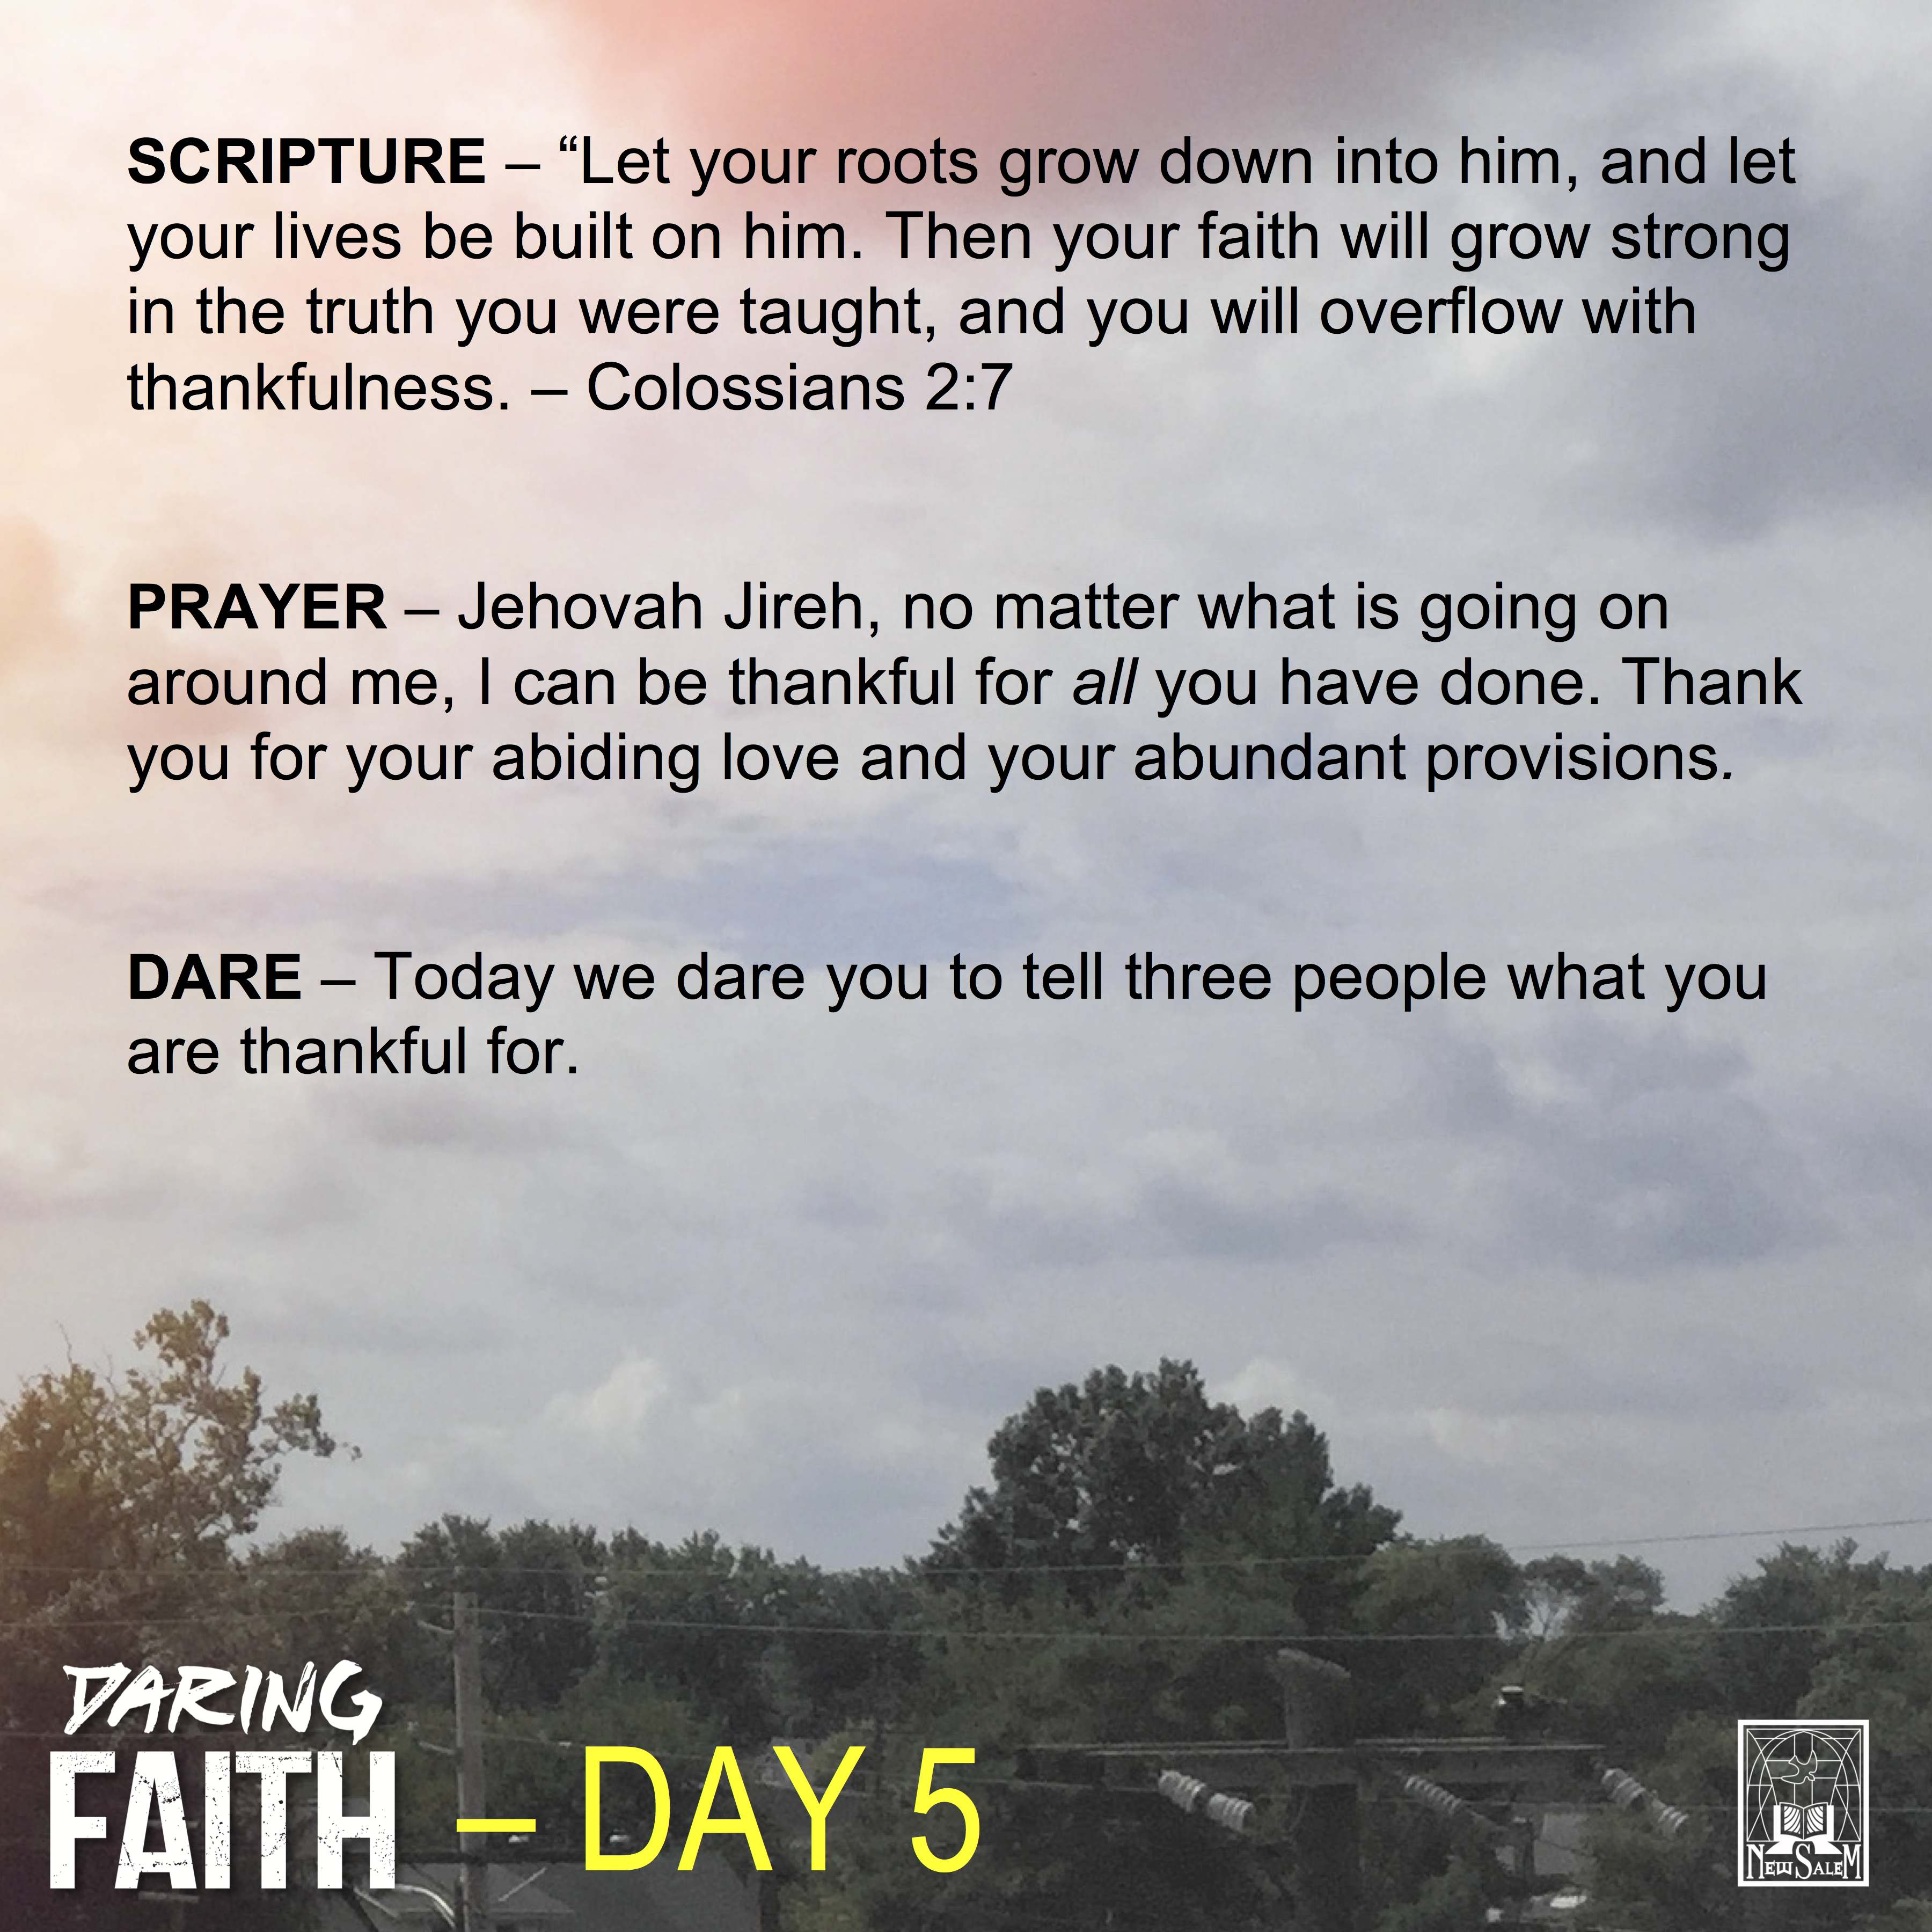 Daring Faith Devotional - Day 5